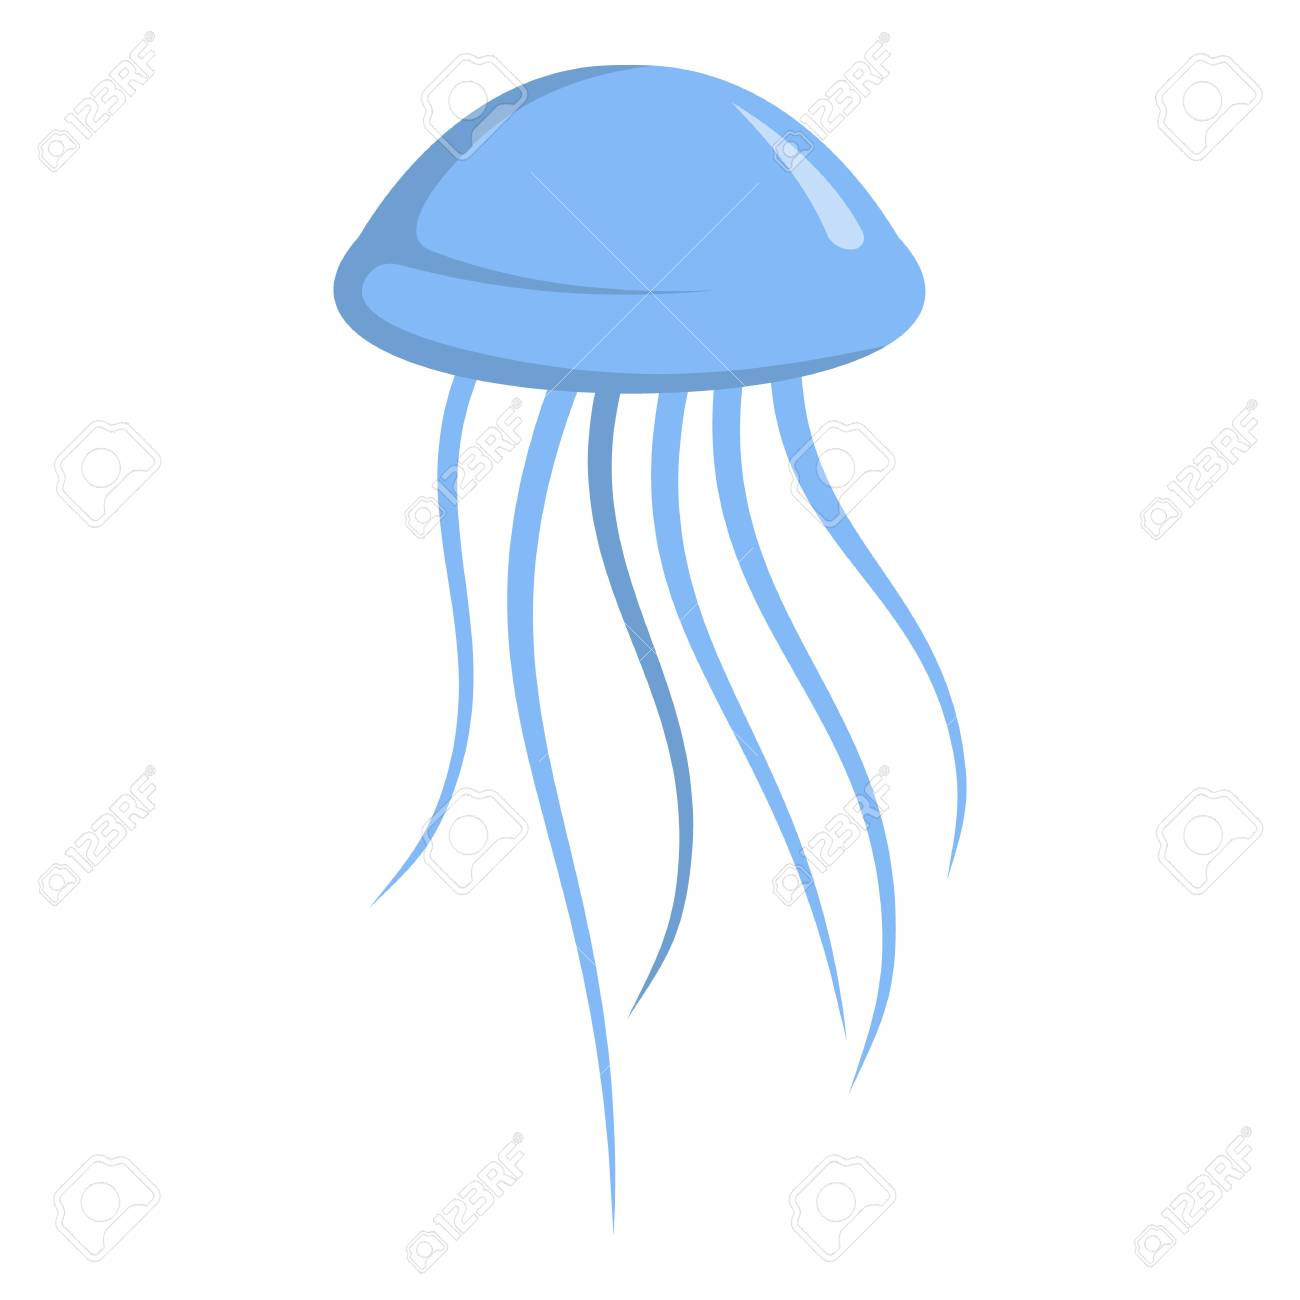 jellyfish icon cartoon illustration of jellyfish vector icon rh 123rf com jellyfish vector free jellyfish factory graphing